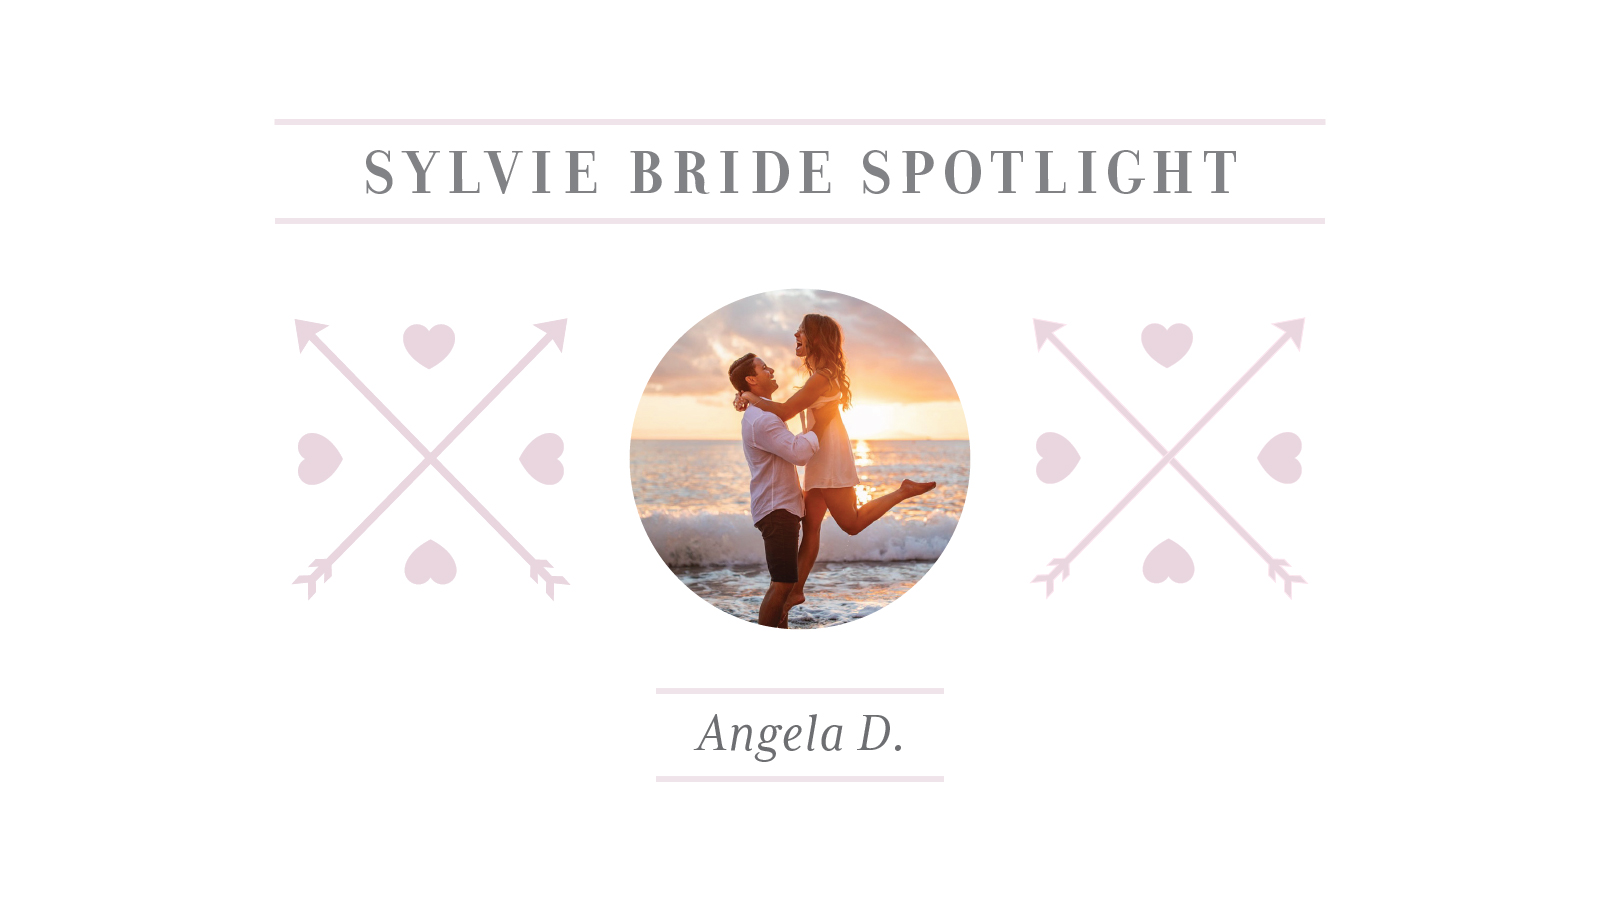 Sylvie Bride Spotlight - AngelaD